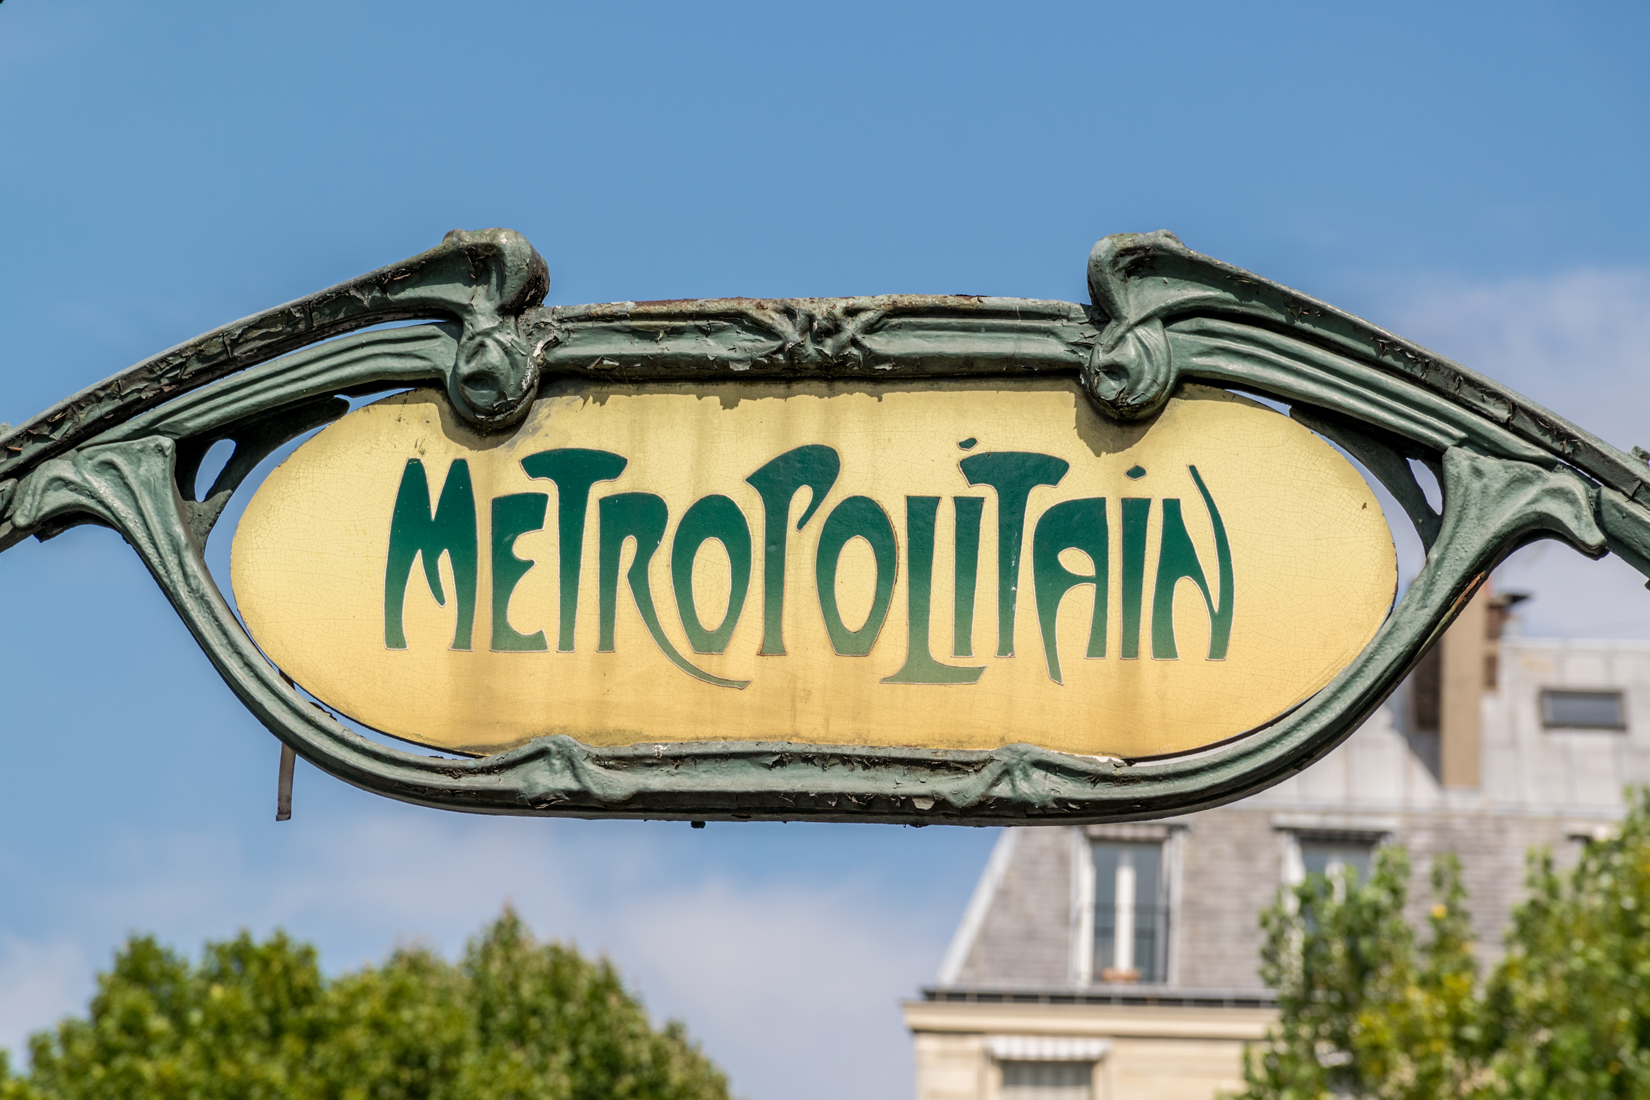 A symbol of the city, the Paris Métro was influenced by Art Nouveau